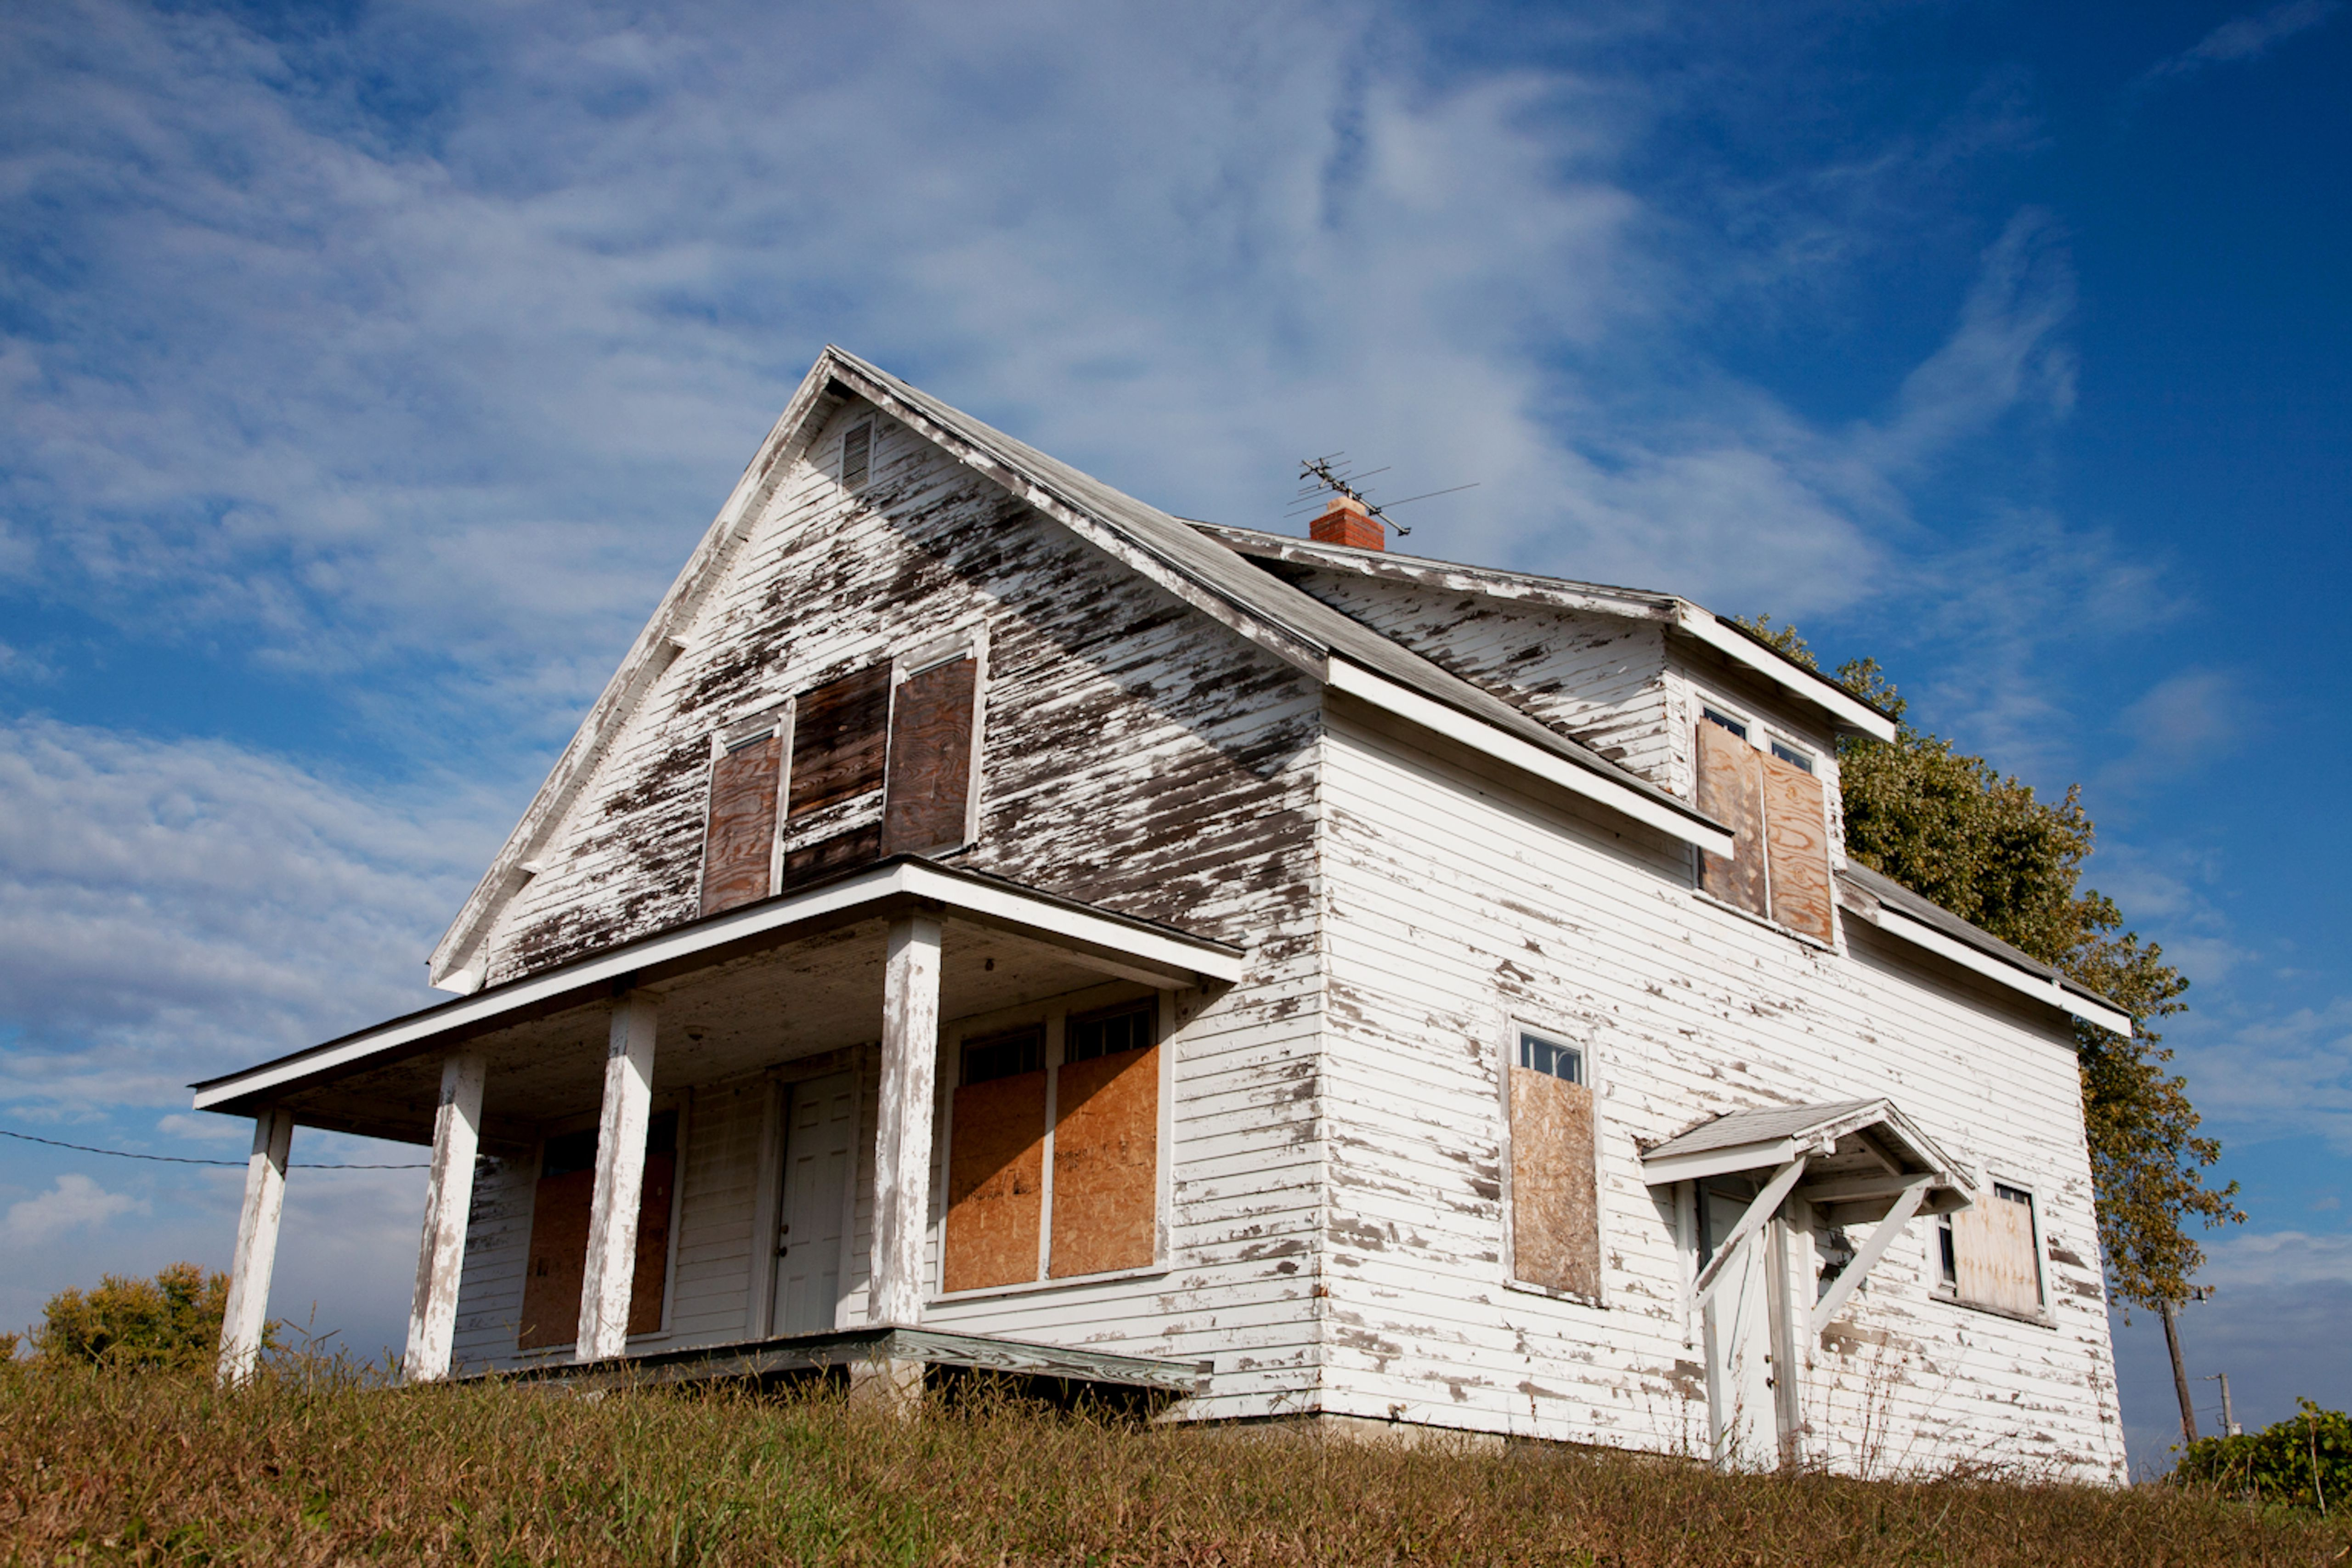 7 Steps To Fix Peeling House Paint